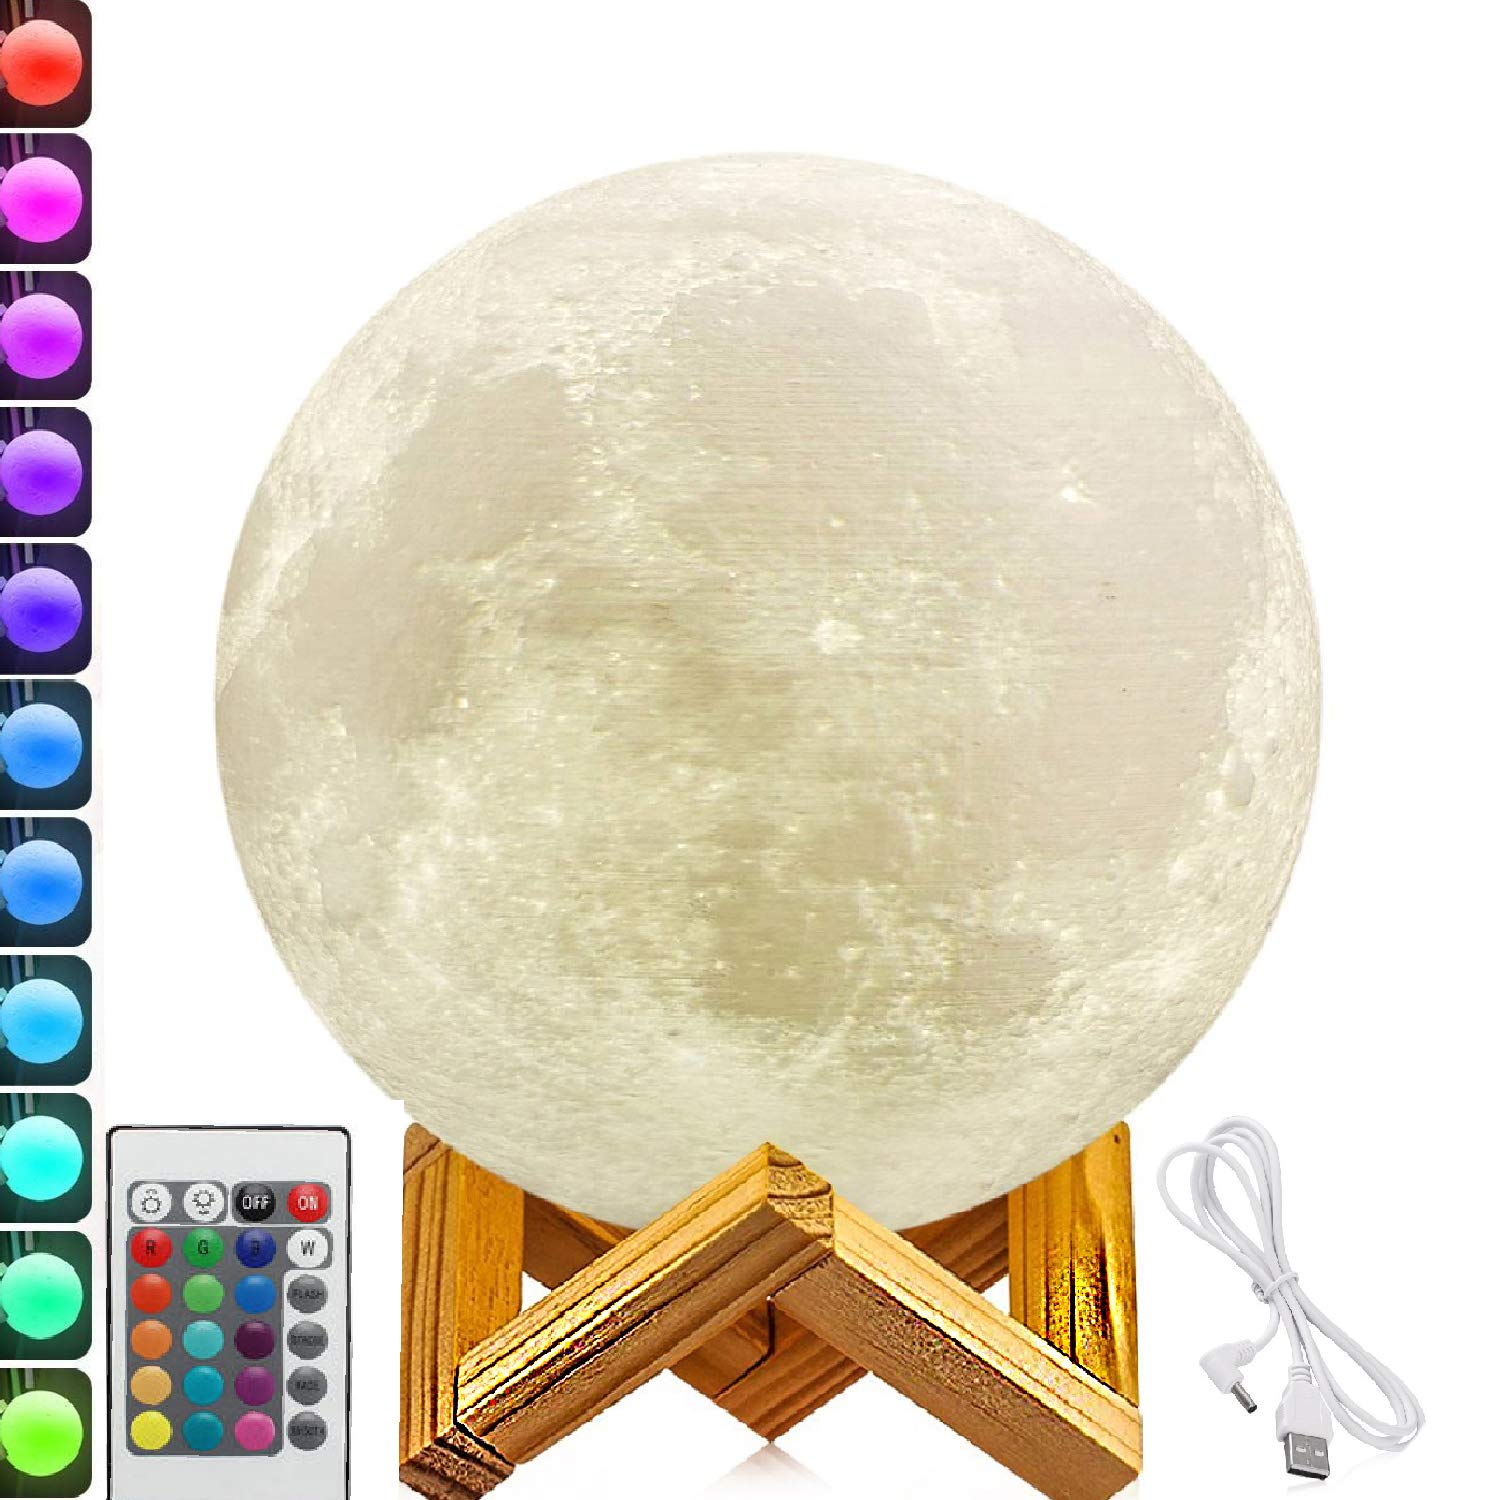 13.7 inch Large Moon Lamp,3D Moon Lamp, 100% 3D Printed Big Moon Lamp,16 Colors Moon Lamp with Remote Control Decorative Moon Light.